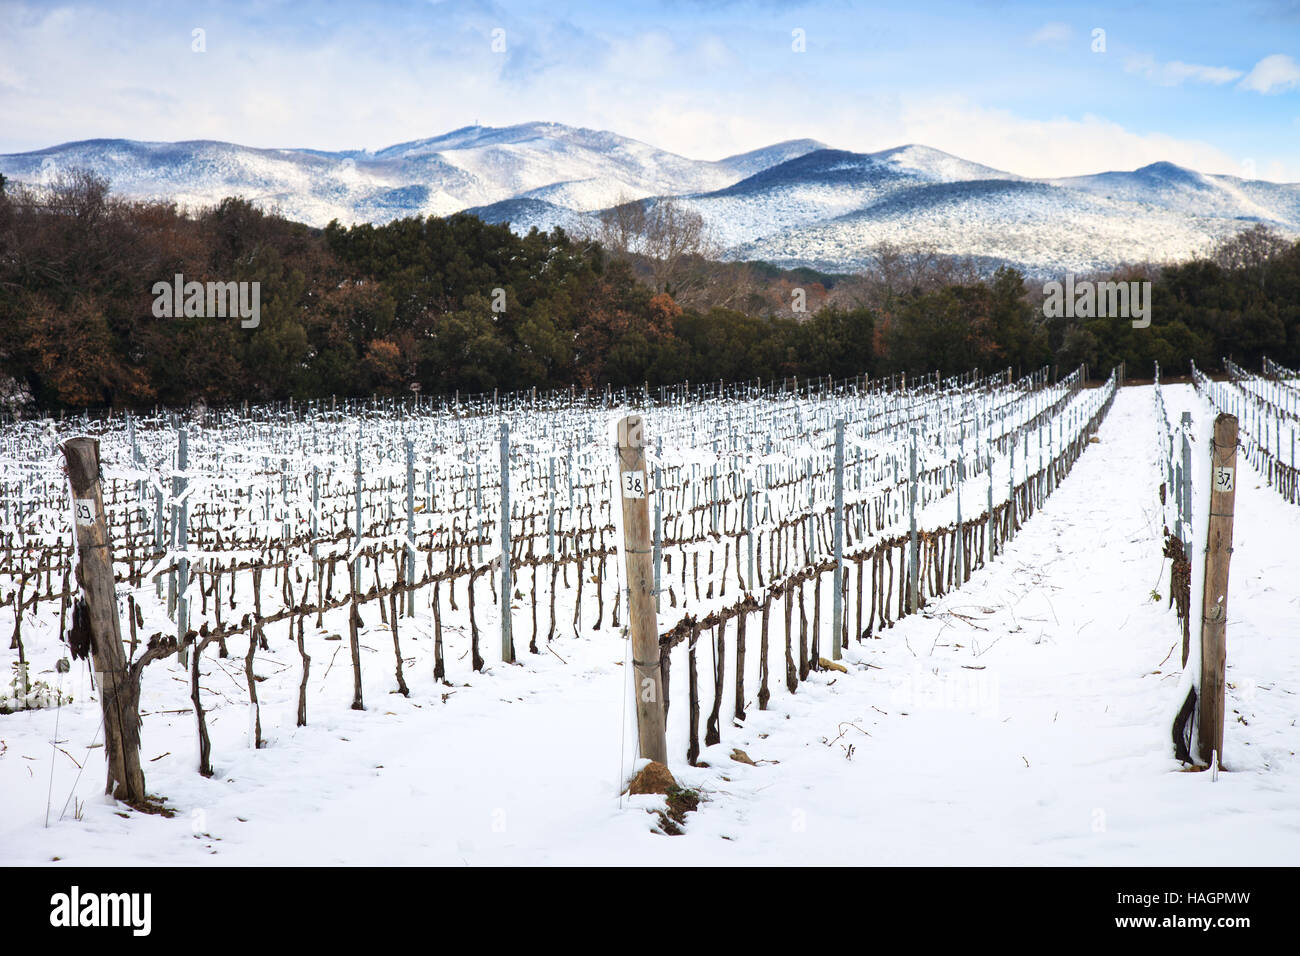 Vineyards rows covered by snow in winter. Chianti countryside, Florence, Tuscany region, Italy - Stock Image